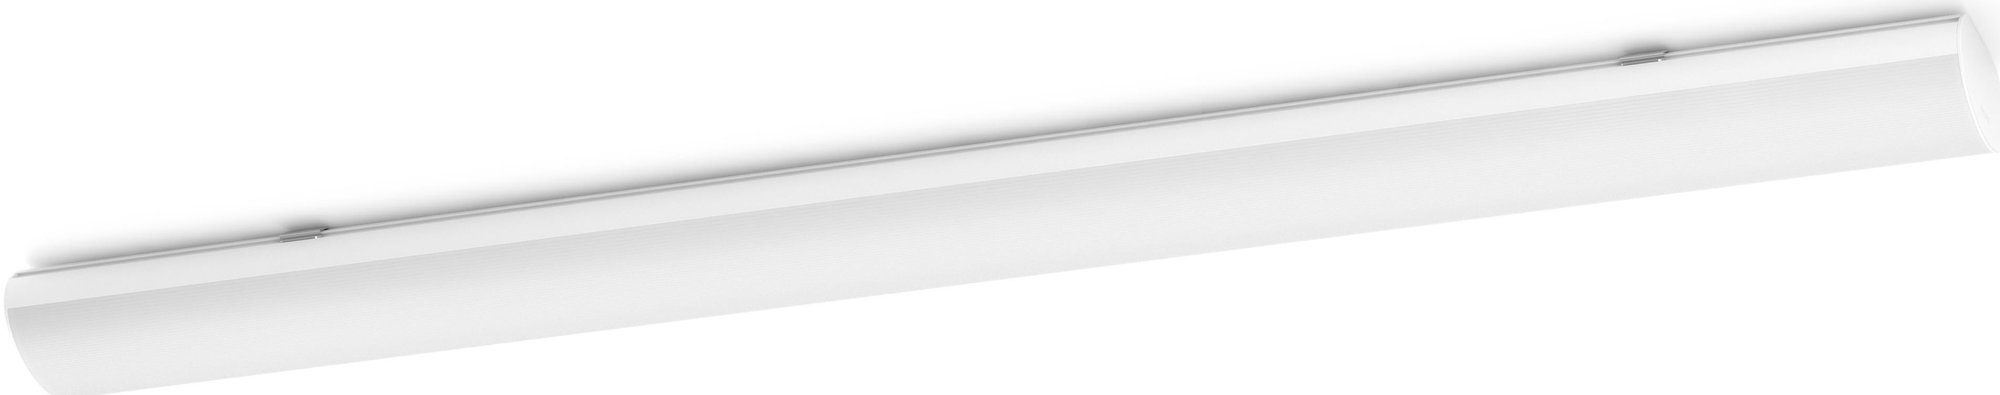 Philips SoftLine LED Linea Large plafondlamp